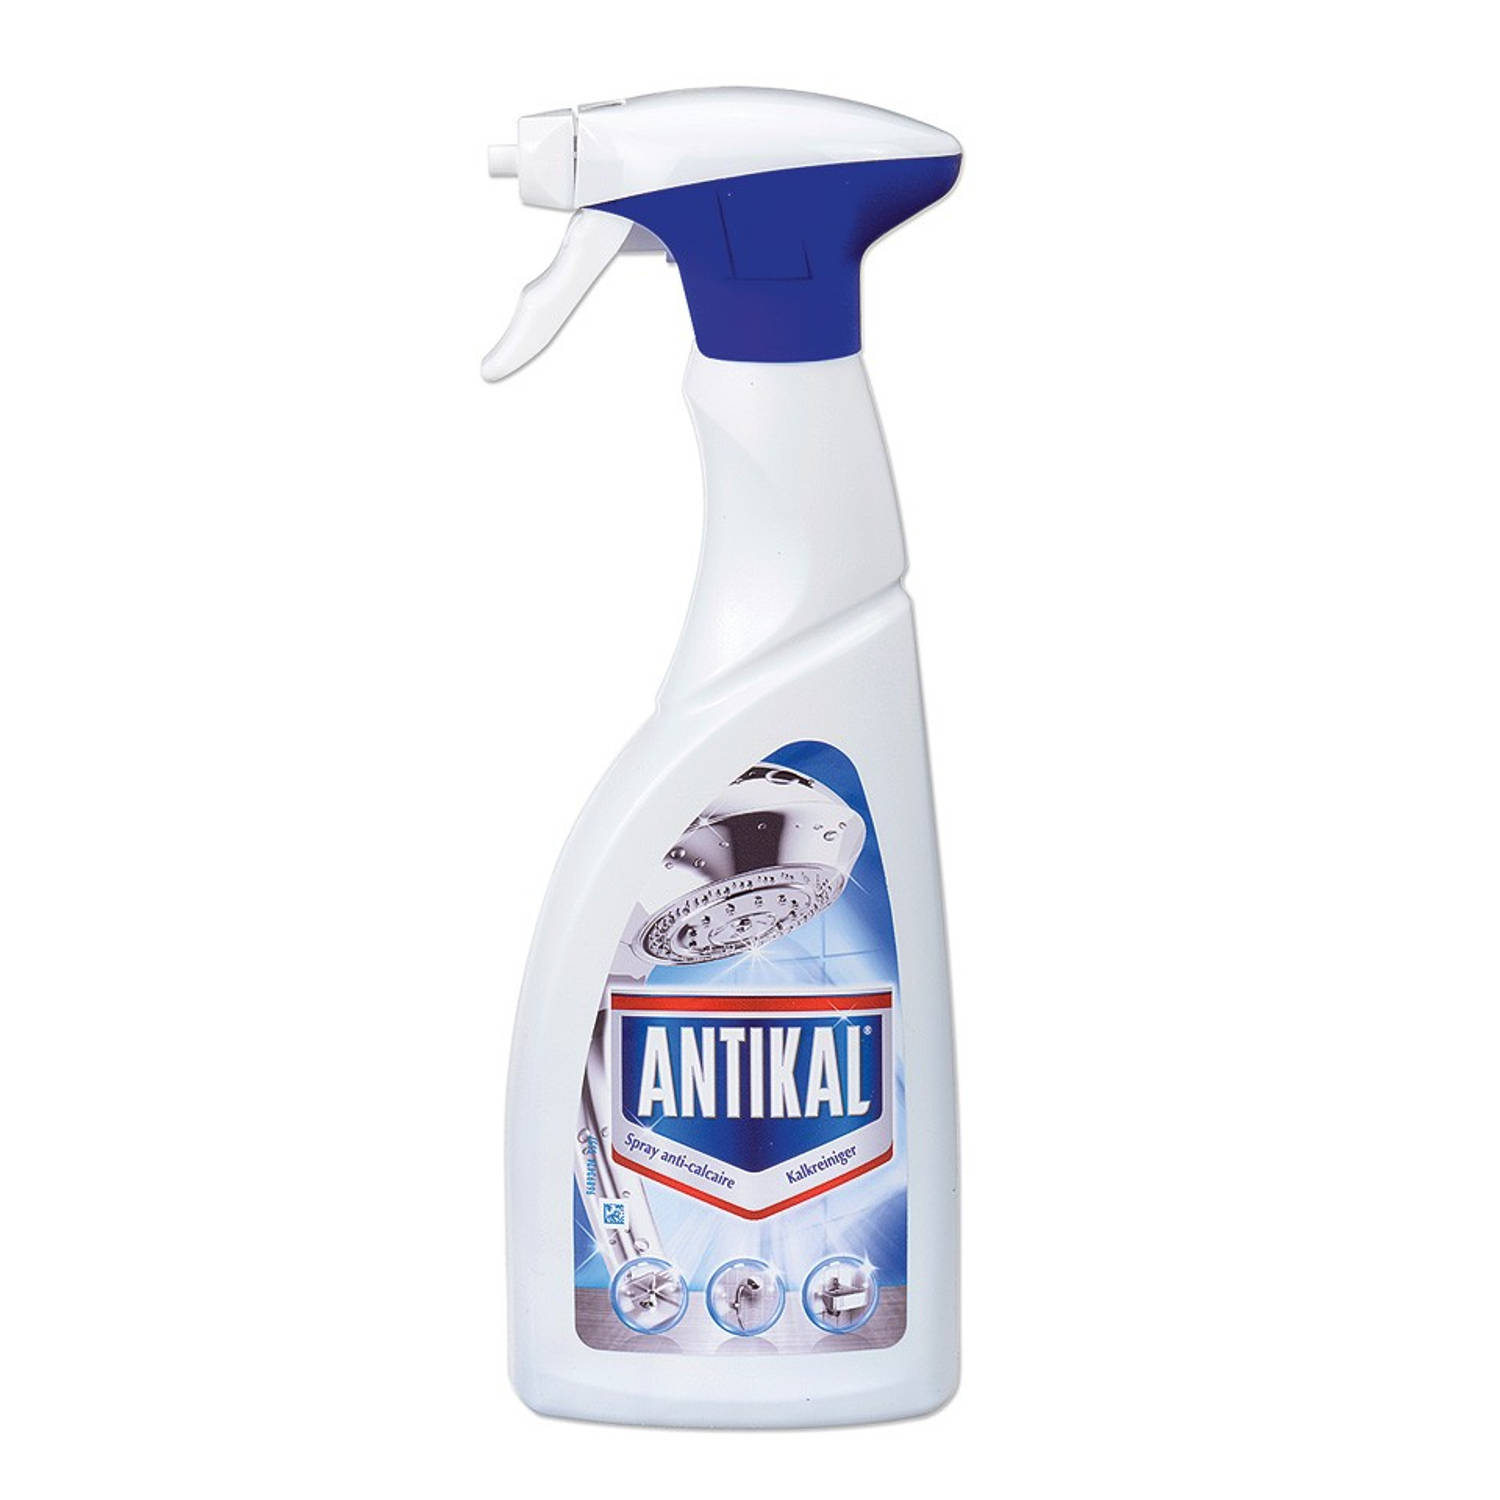 Antikal Spray Regular kalkreiniger